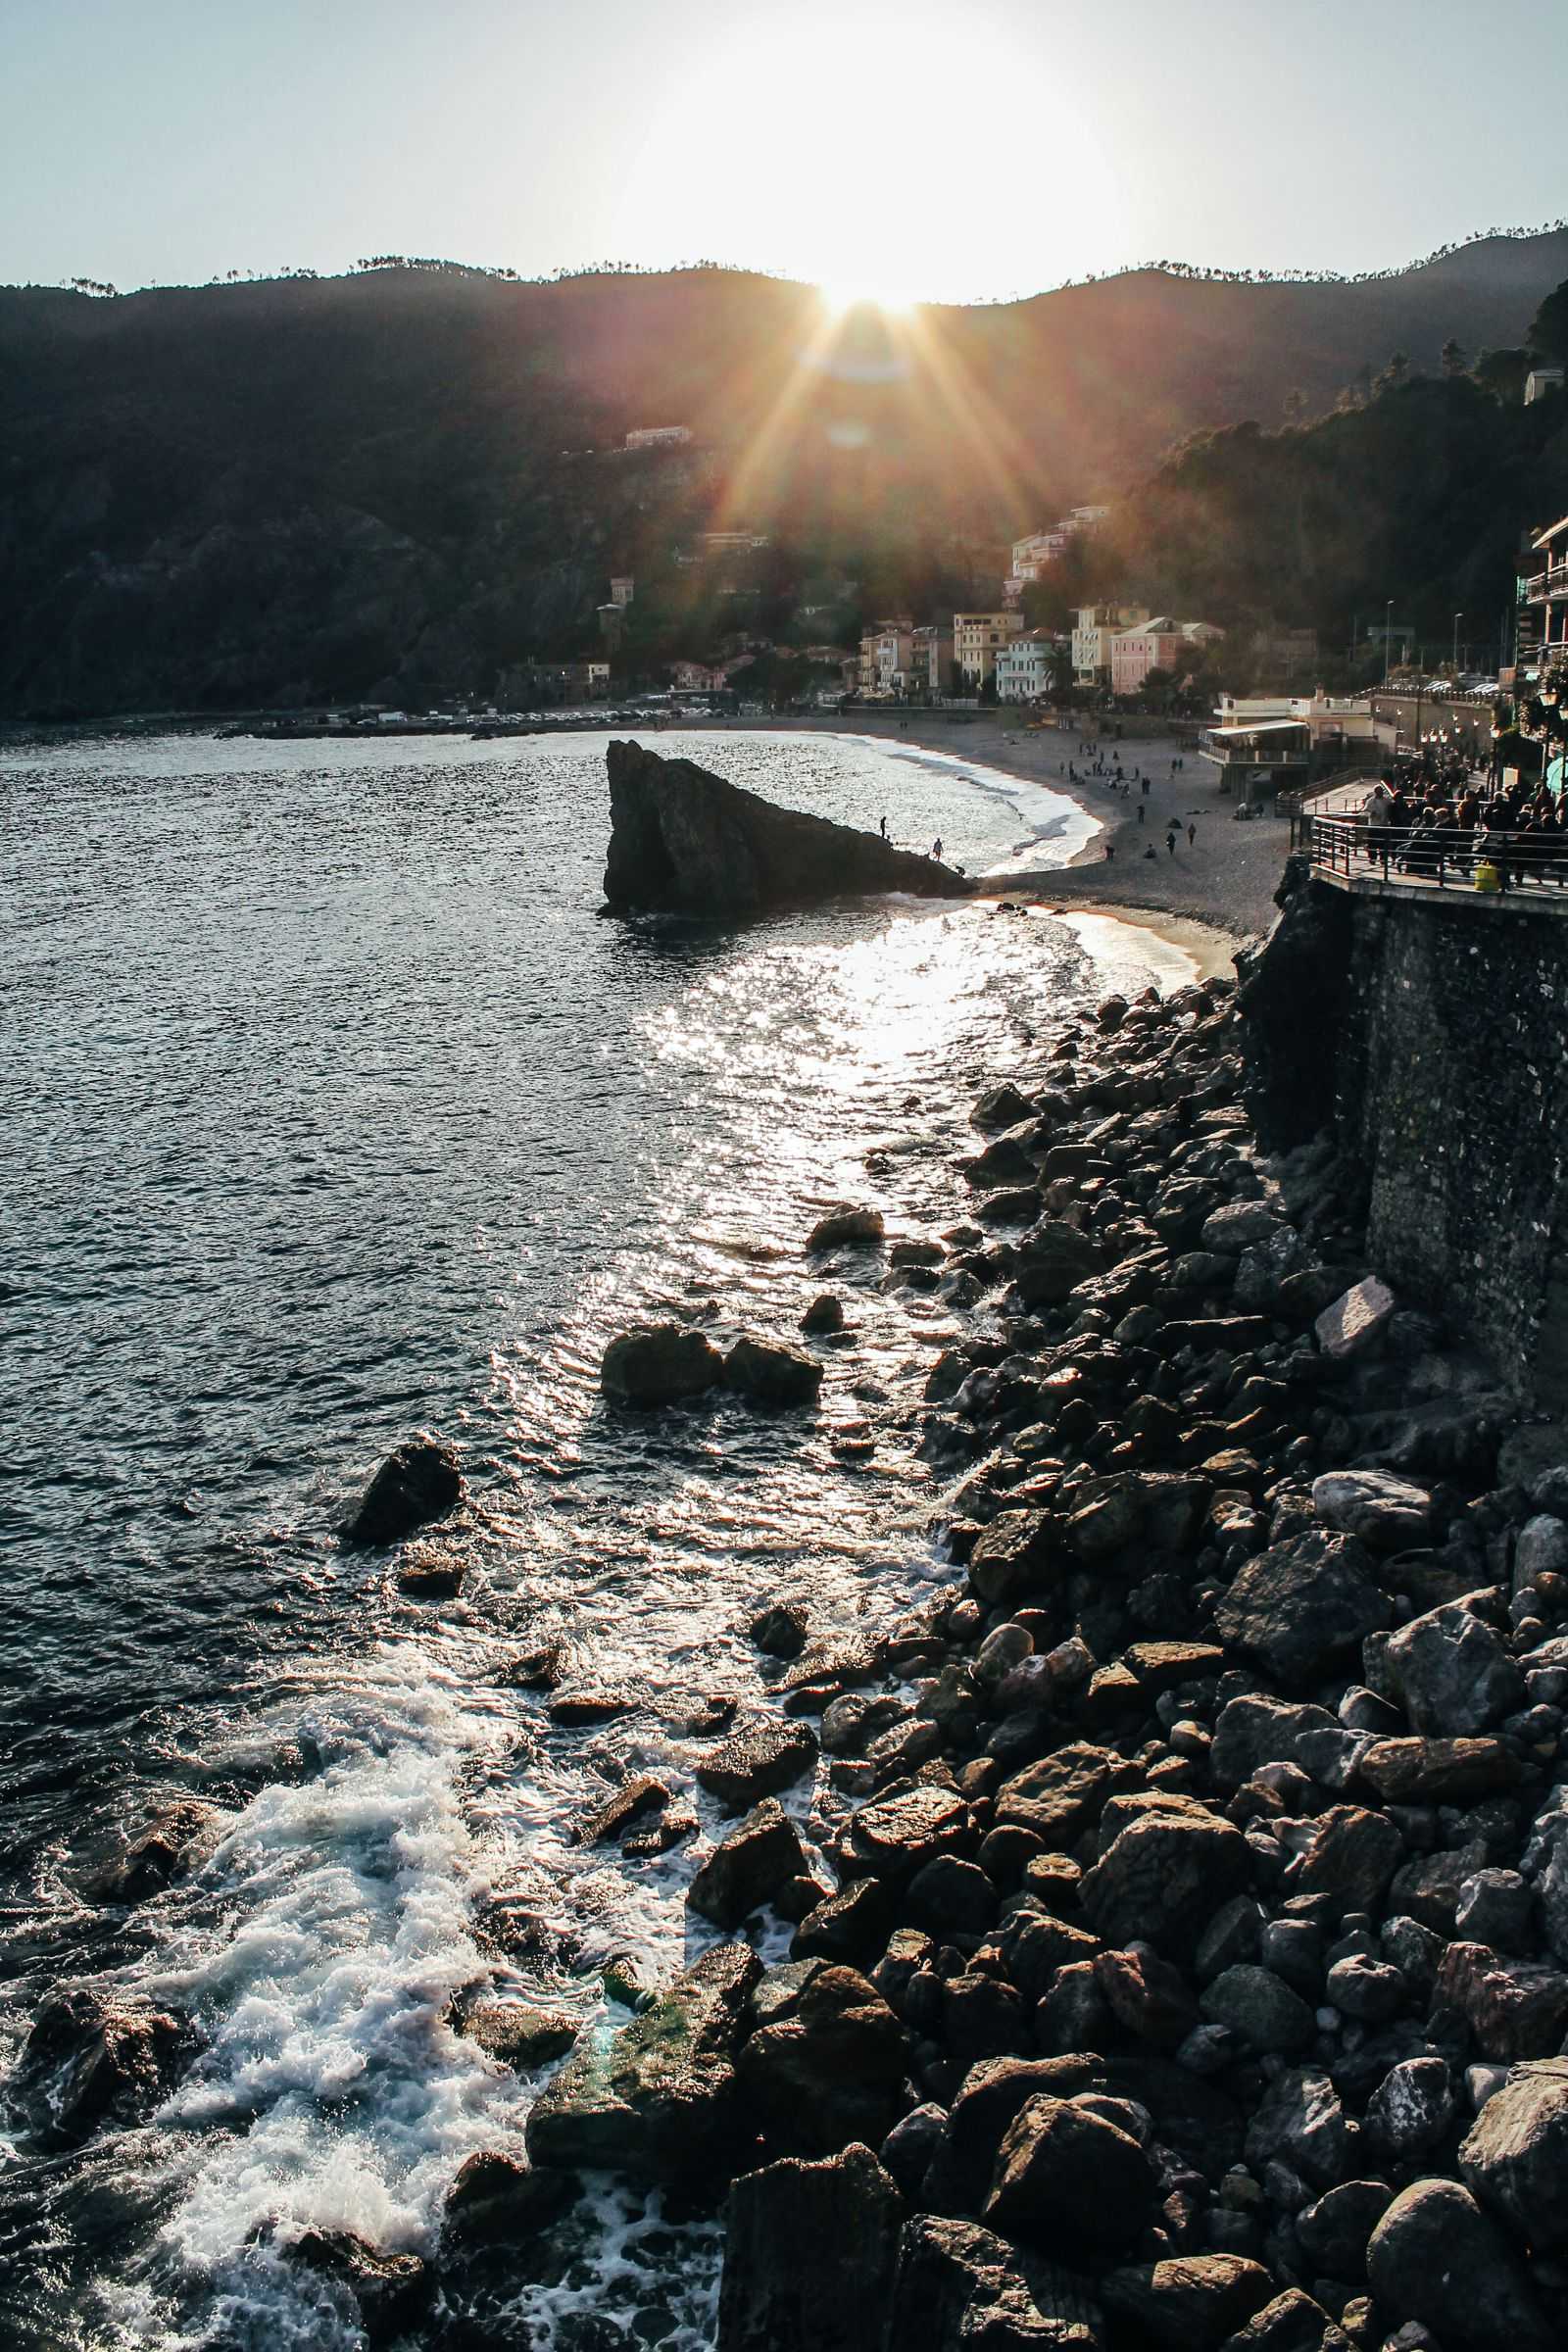 Monterosso al Mare in Cinque Terre, Italy - The Photo Diary! [5 of 5] (9)